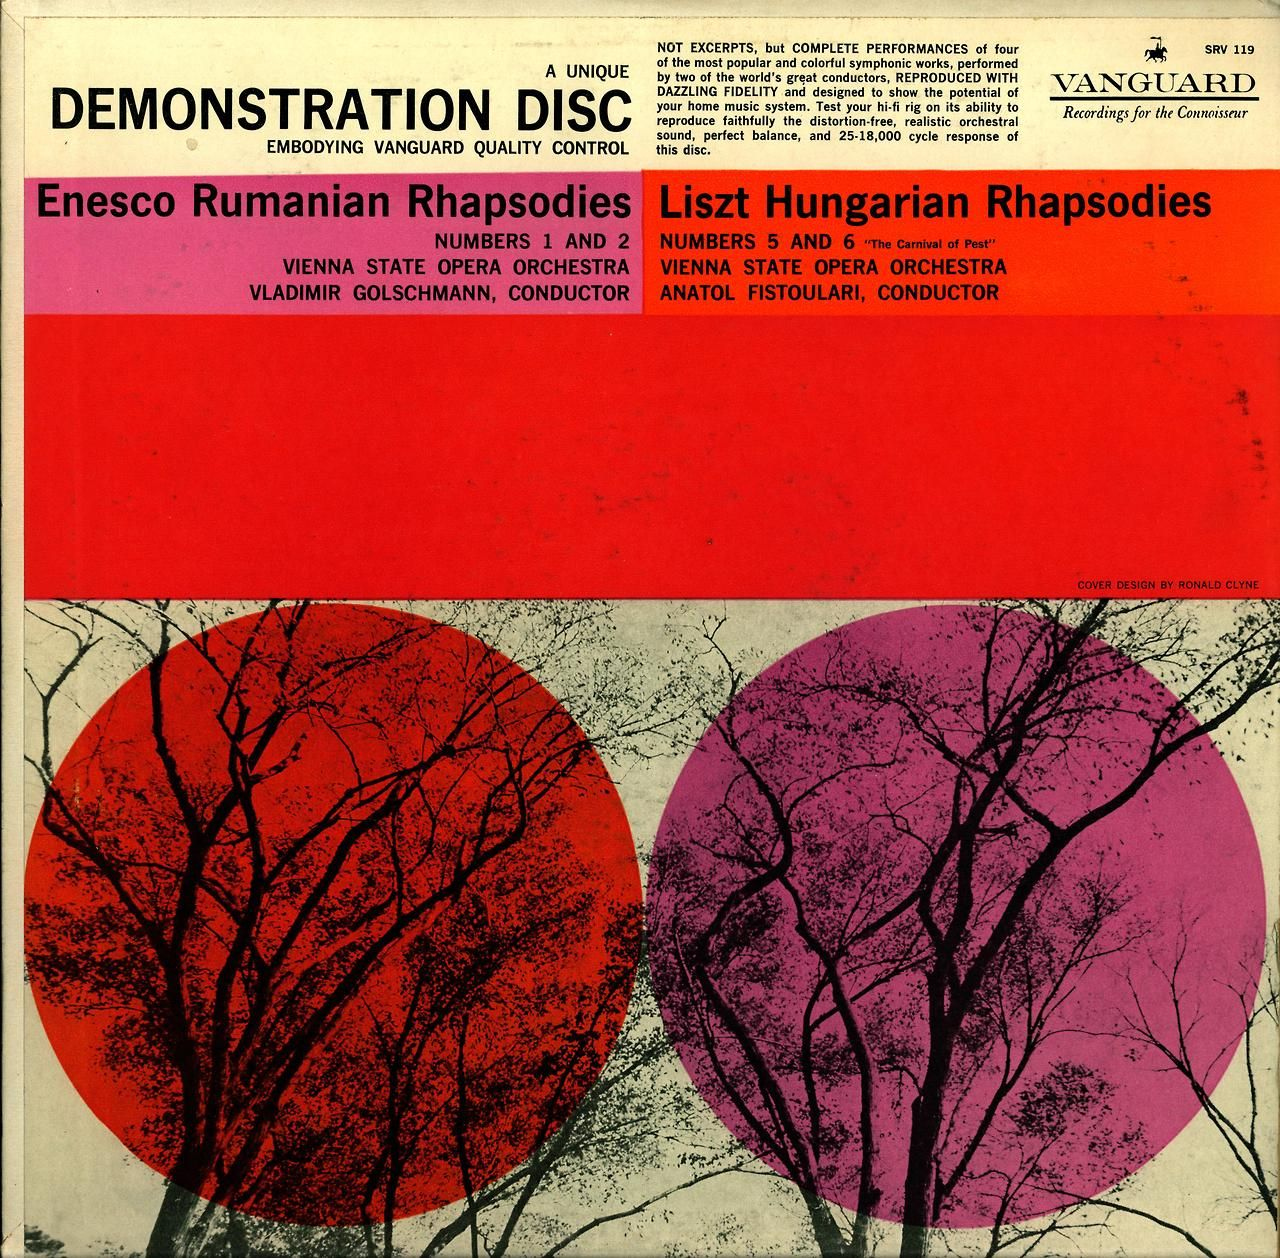 Enesco- Rumanian Rhapsodies:Liszt- Hungarian Rhapsodies  Vienna State Opera Orchestra, Vladimir Golschmann and Anatol Fistoulari, cond. (respectively)  Vanguard  SRV 119   Cover design by Ronald Clyne